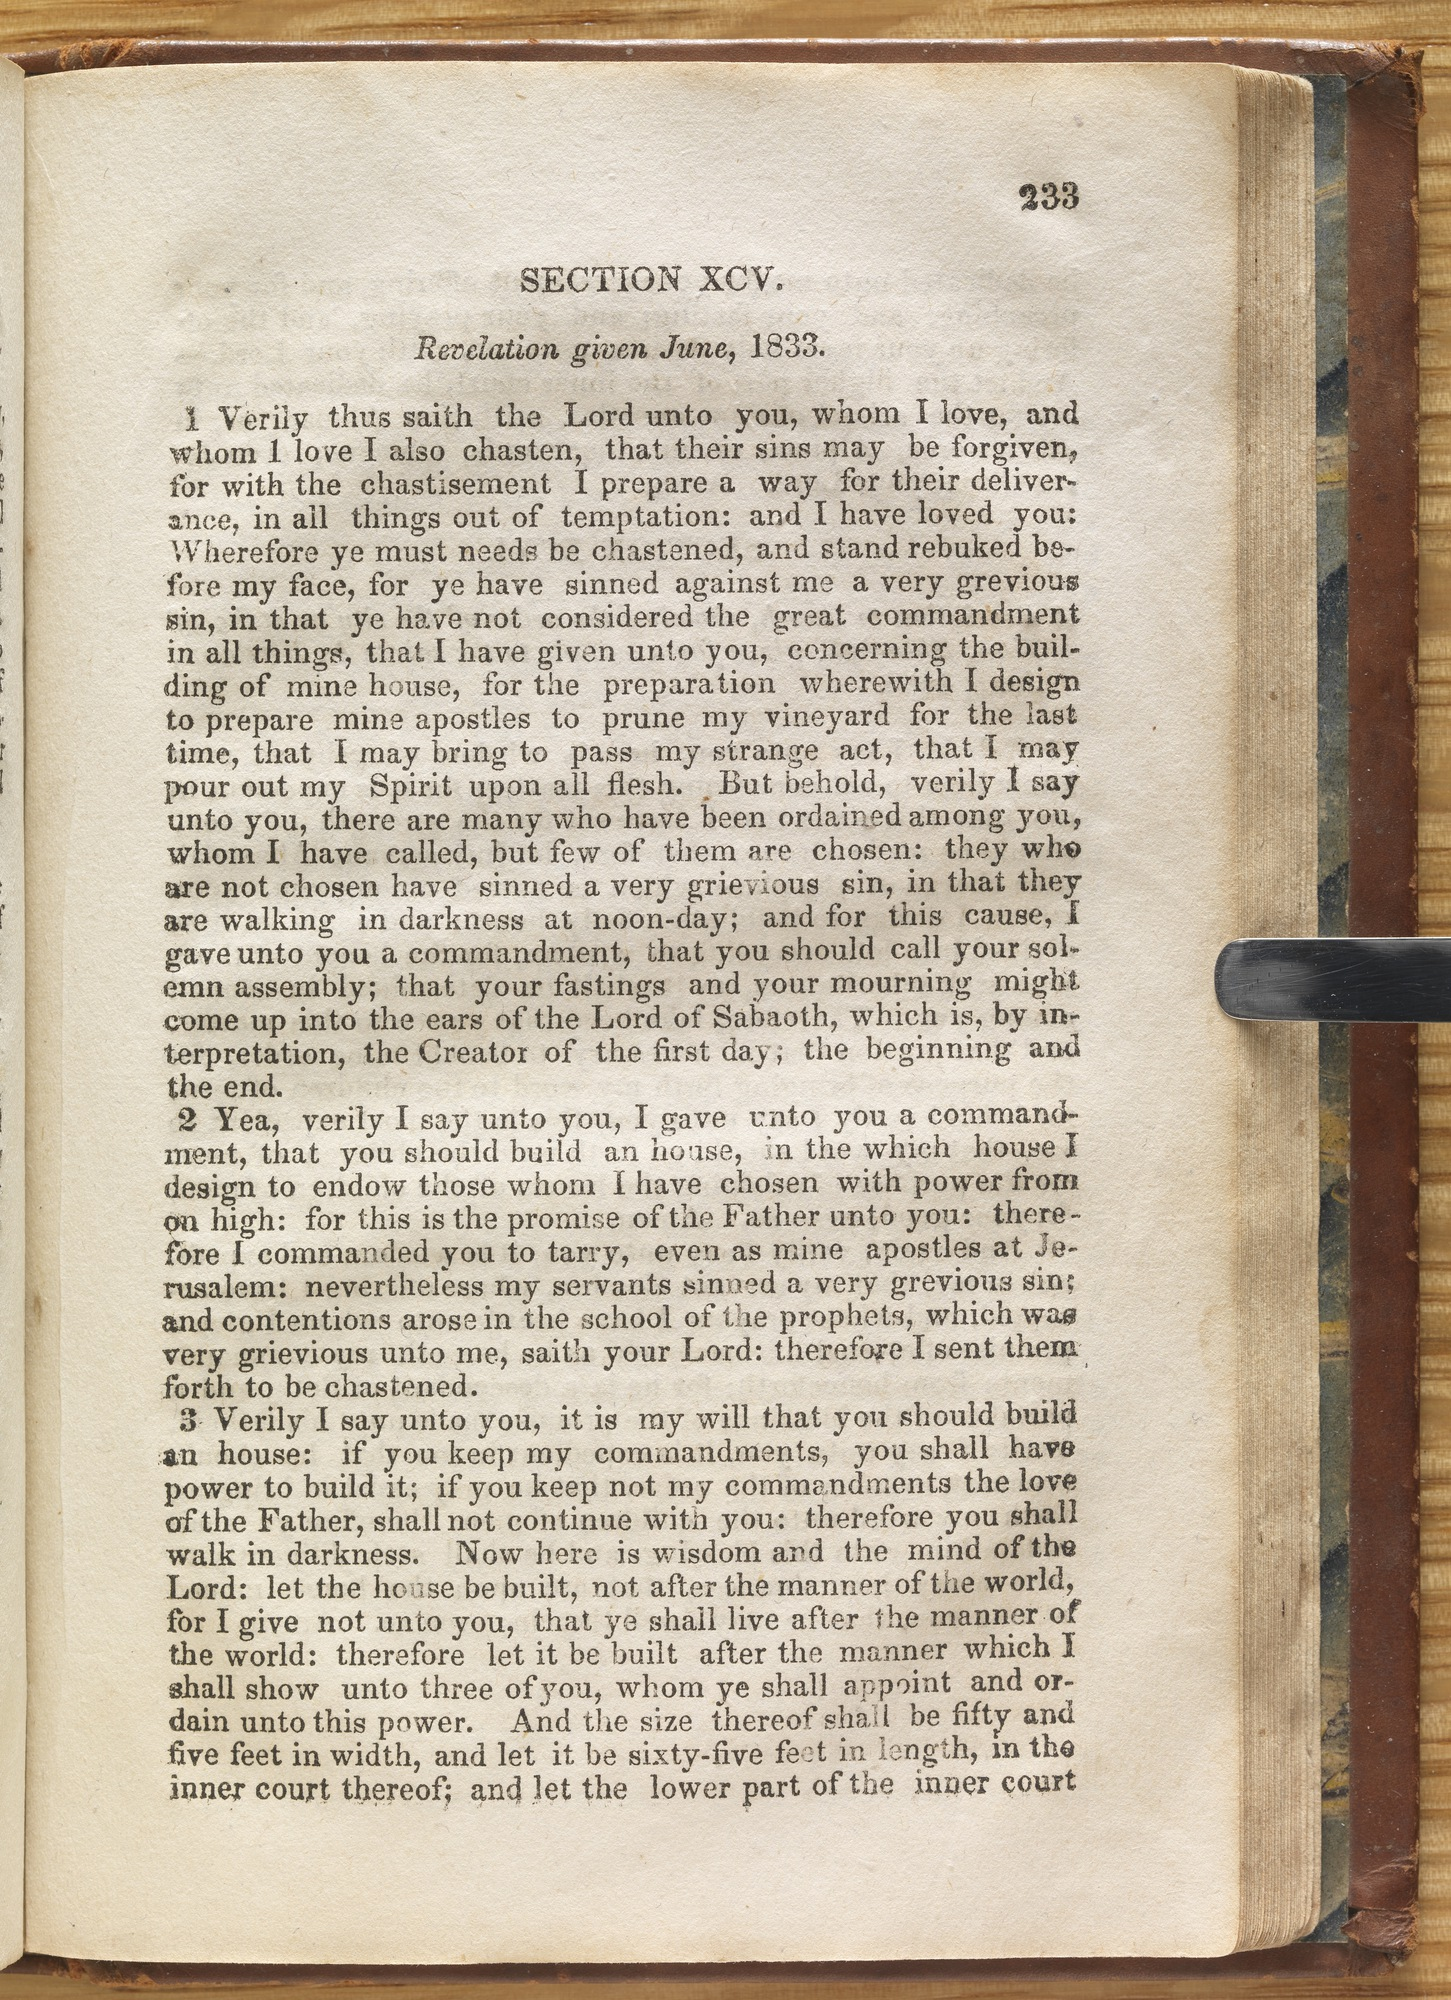 Doctrine and Covenants, 1835, Page 233